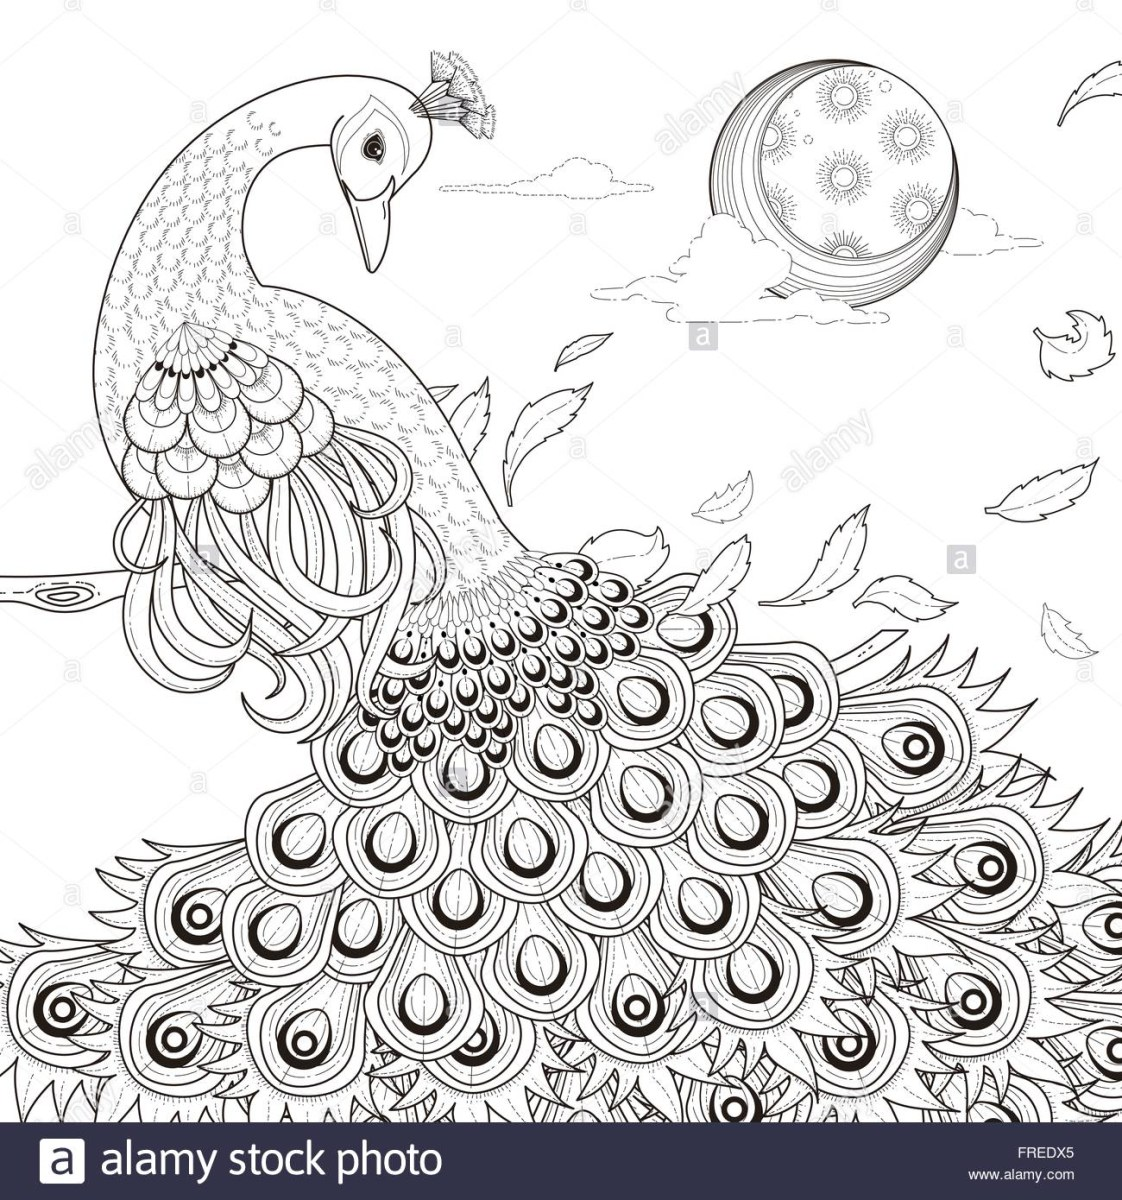 Peacock Coloring Pages Simplistic Peacock Coloring Page Peacocks